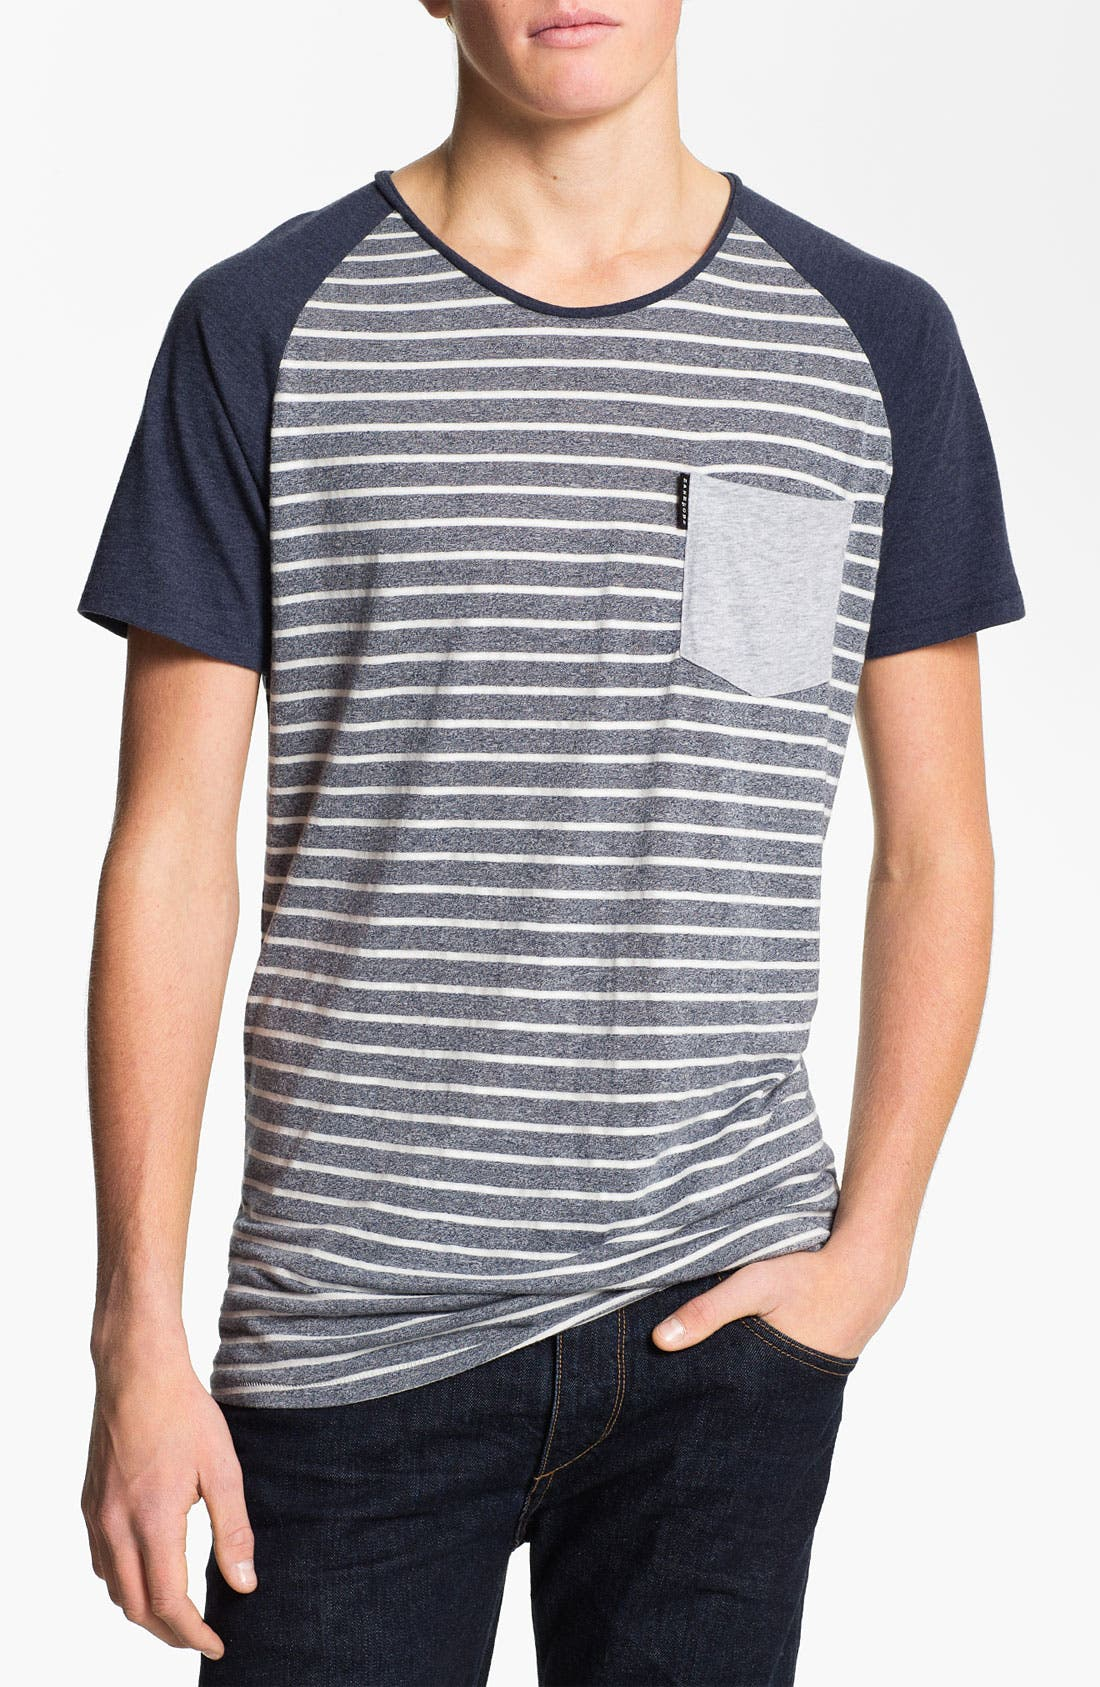 Alternate Image 1 Selected - ZANEROBE 'Duke' Stripe Scoop Neck T-Shirt